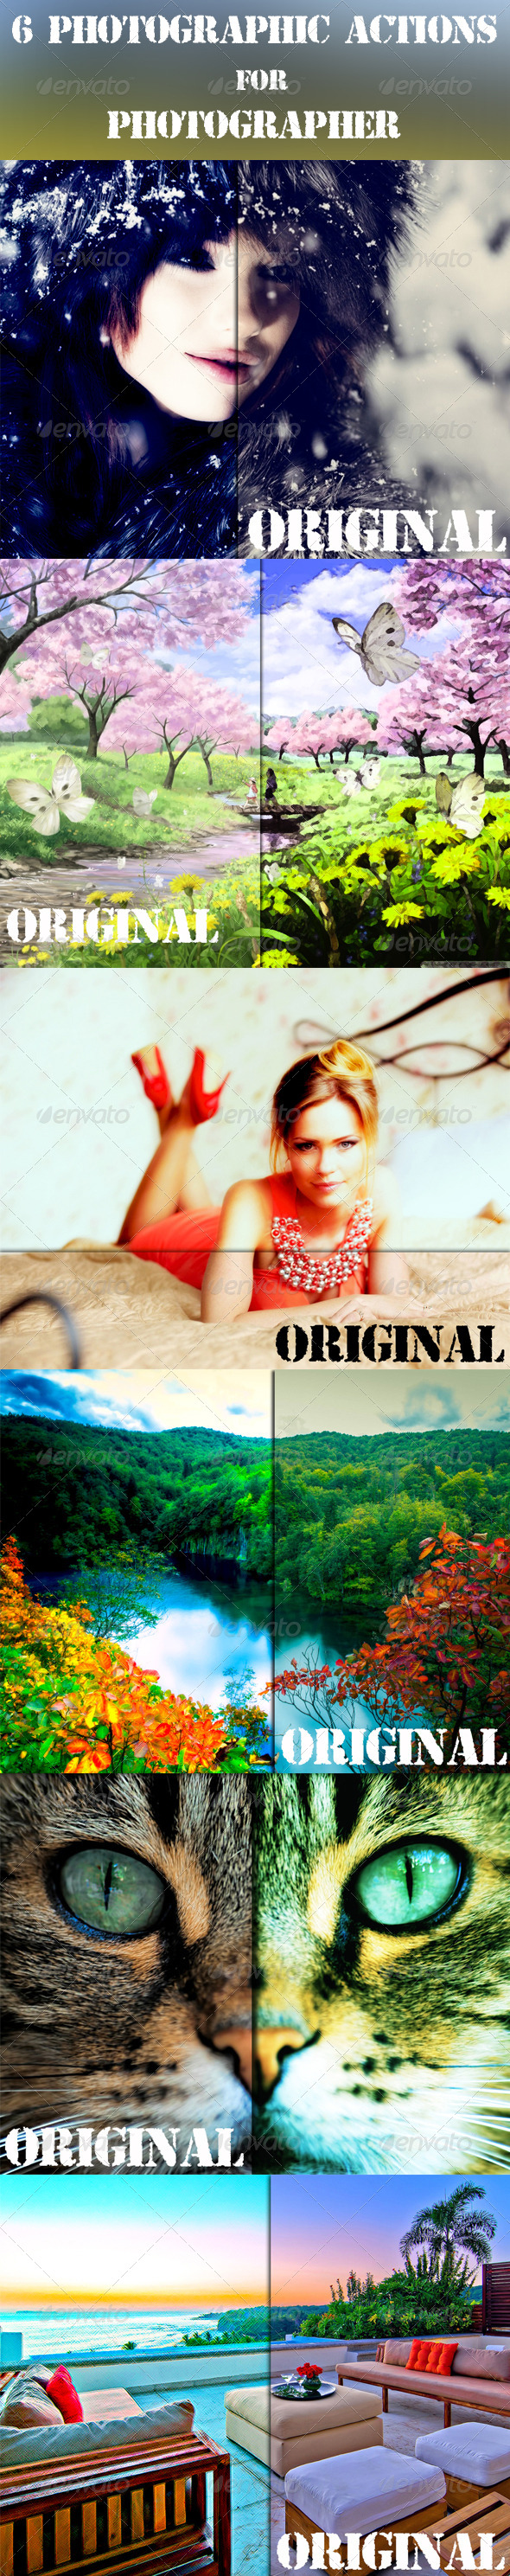 GraphicRiver 6 Photographic Actions For Photographer 8376057